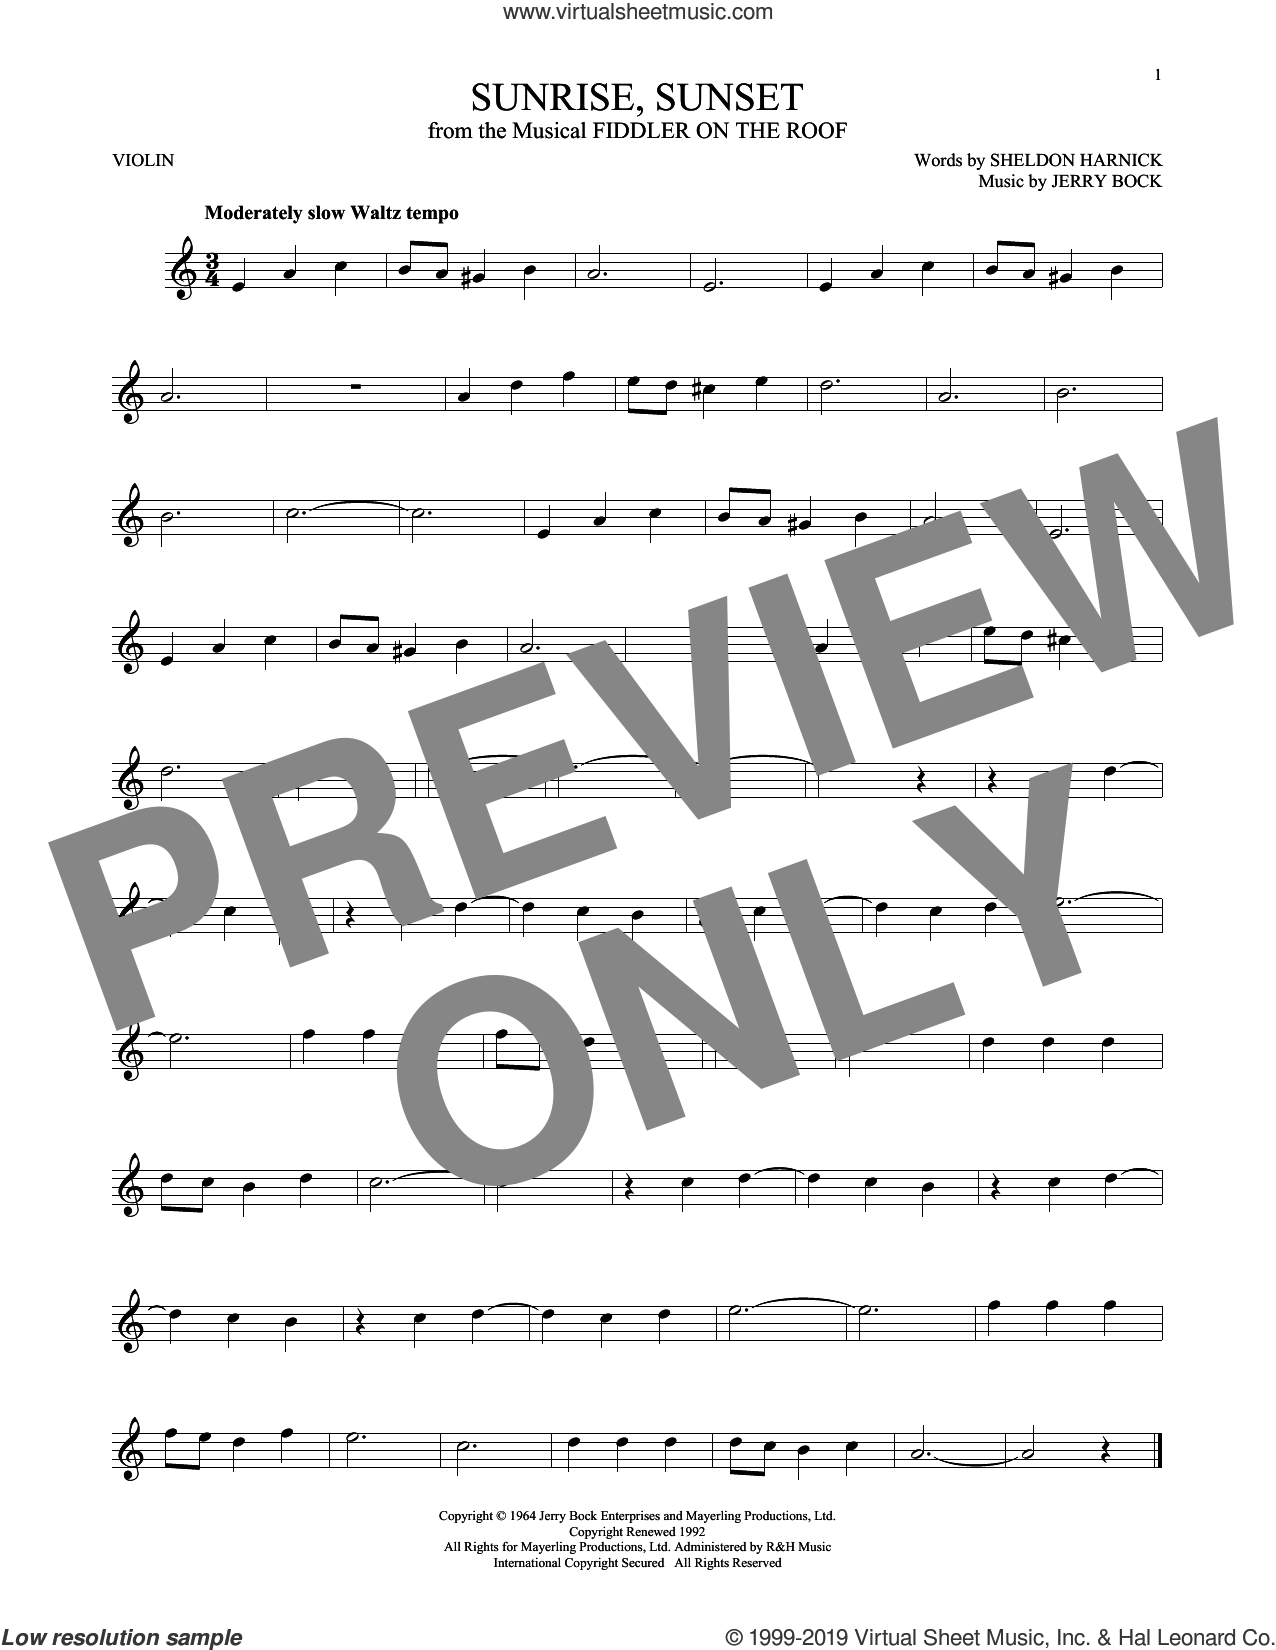 Sunrise, Sunset sheet music for violin solo by Jerry Bock and Sheldon Harnick, intermediate skill level